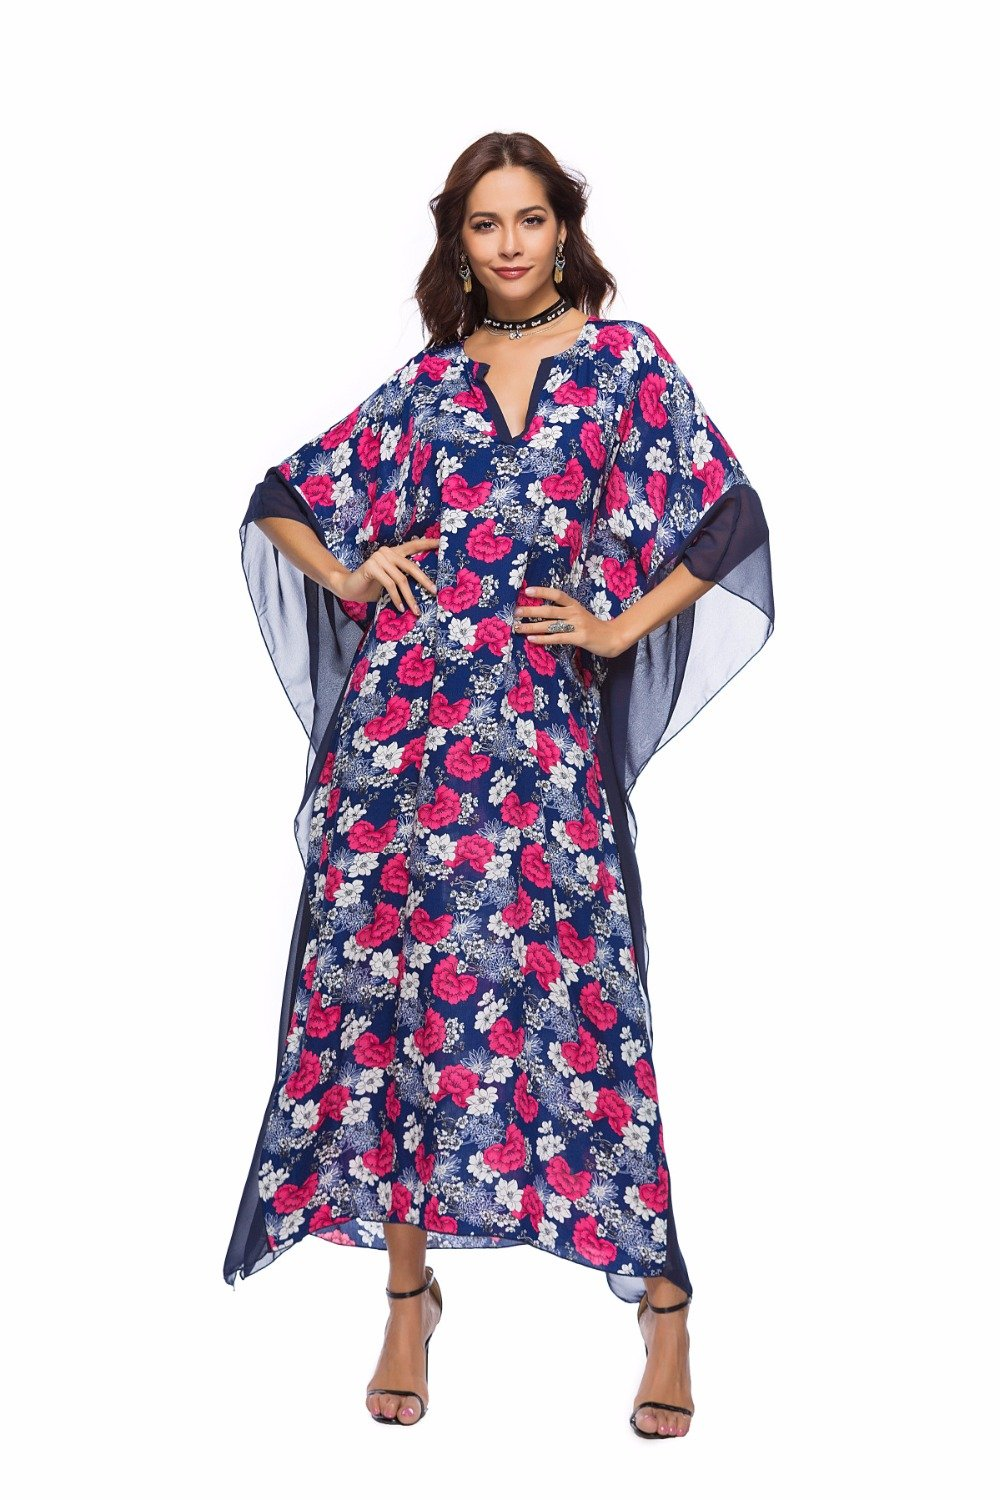 Cover up Beach Long Dress Print Floral Swimwear Bikini cover ups Women Tunic Swimsuit Cover-Ups-Dress-SheSimplyShops